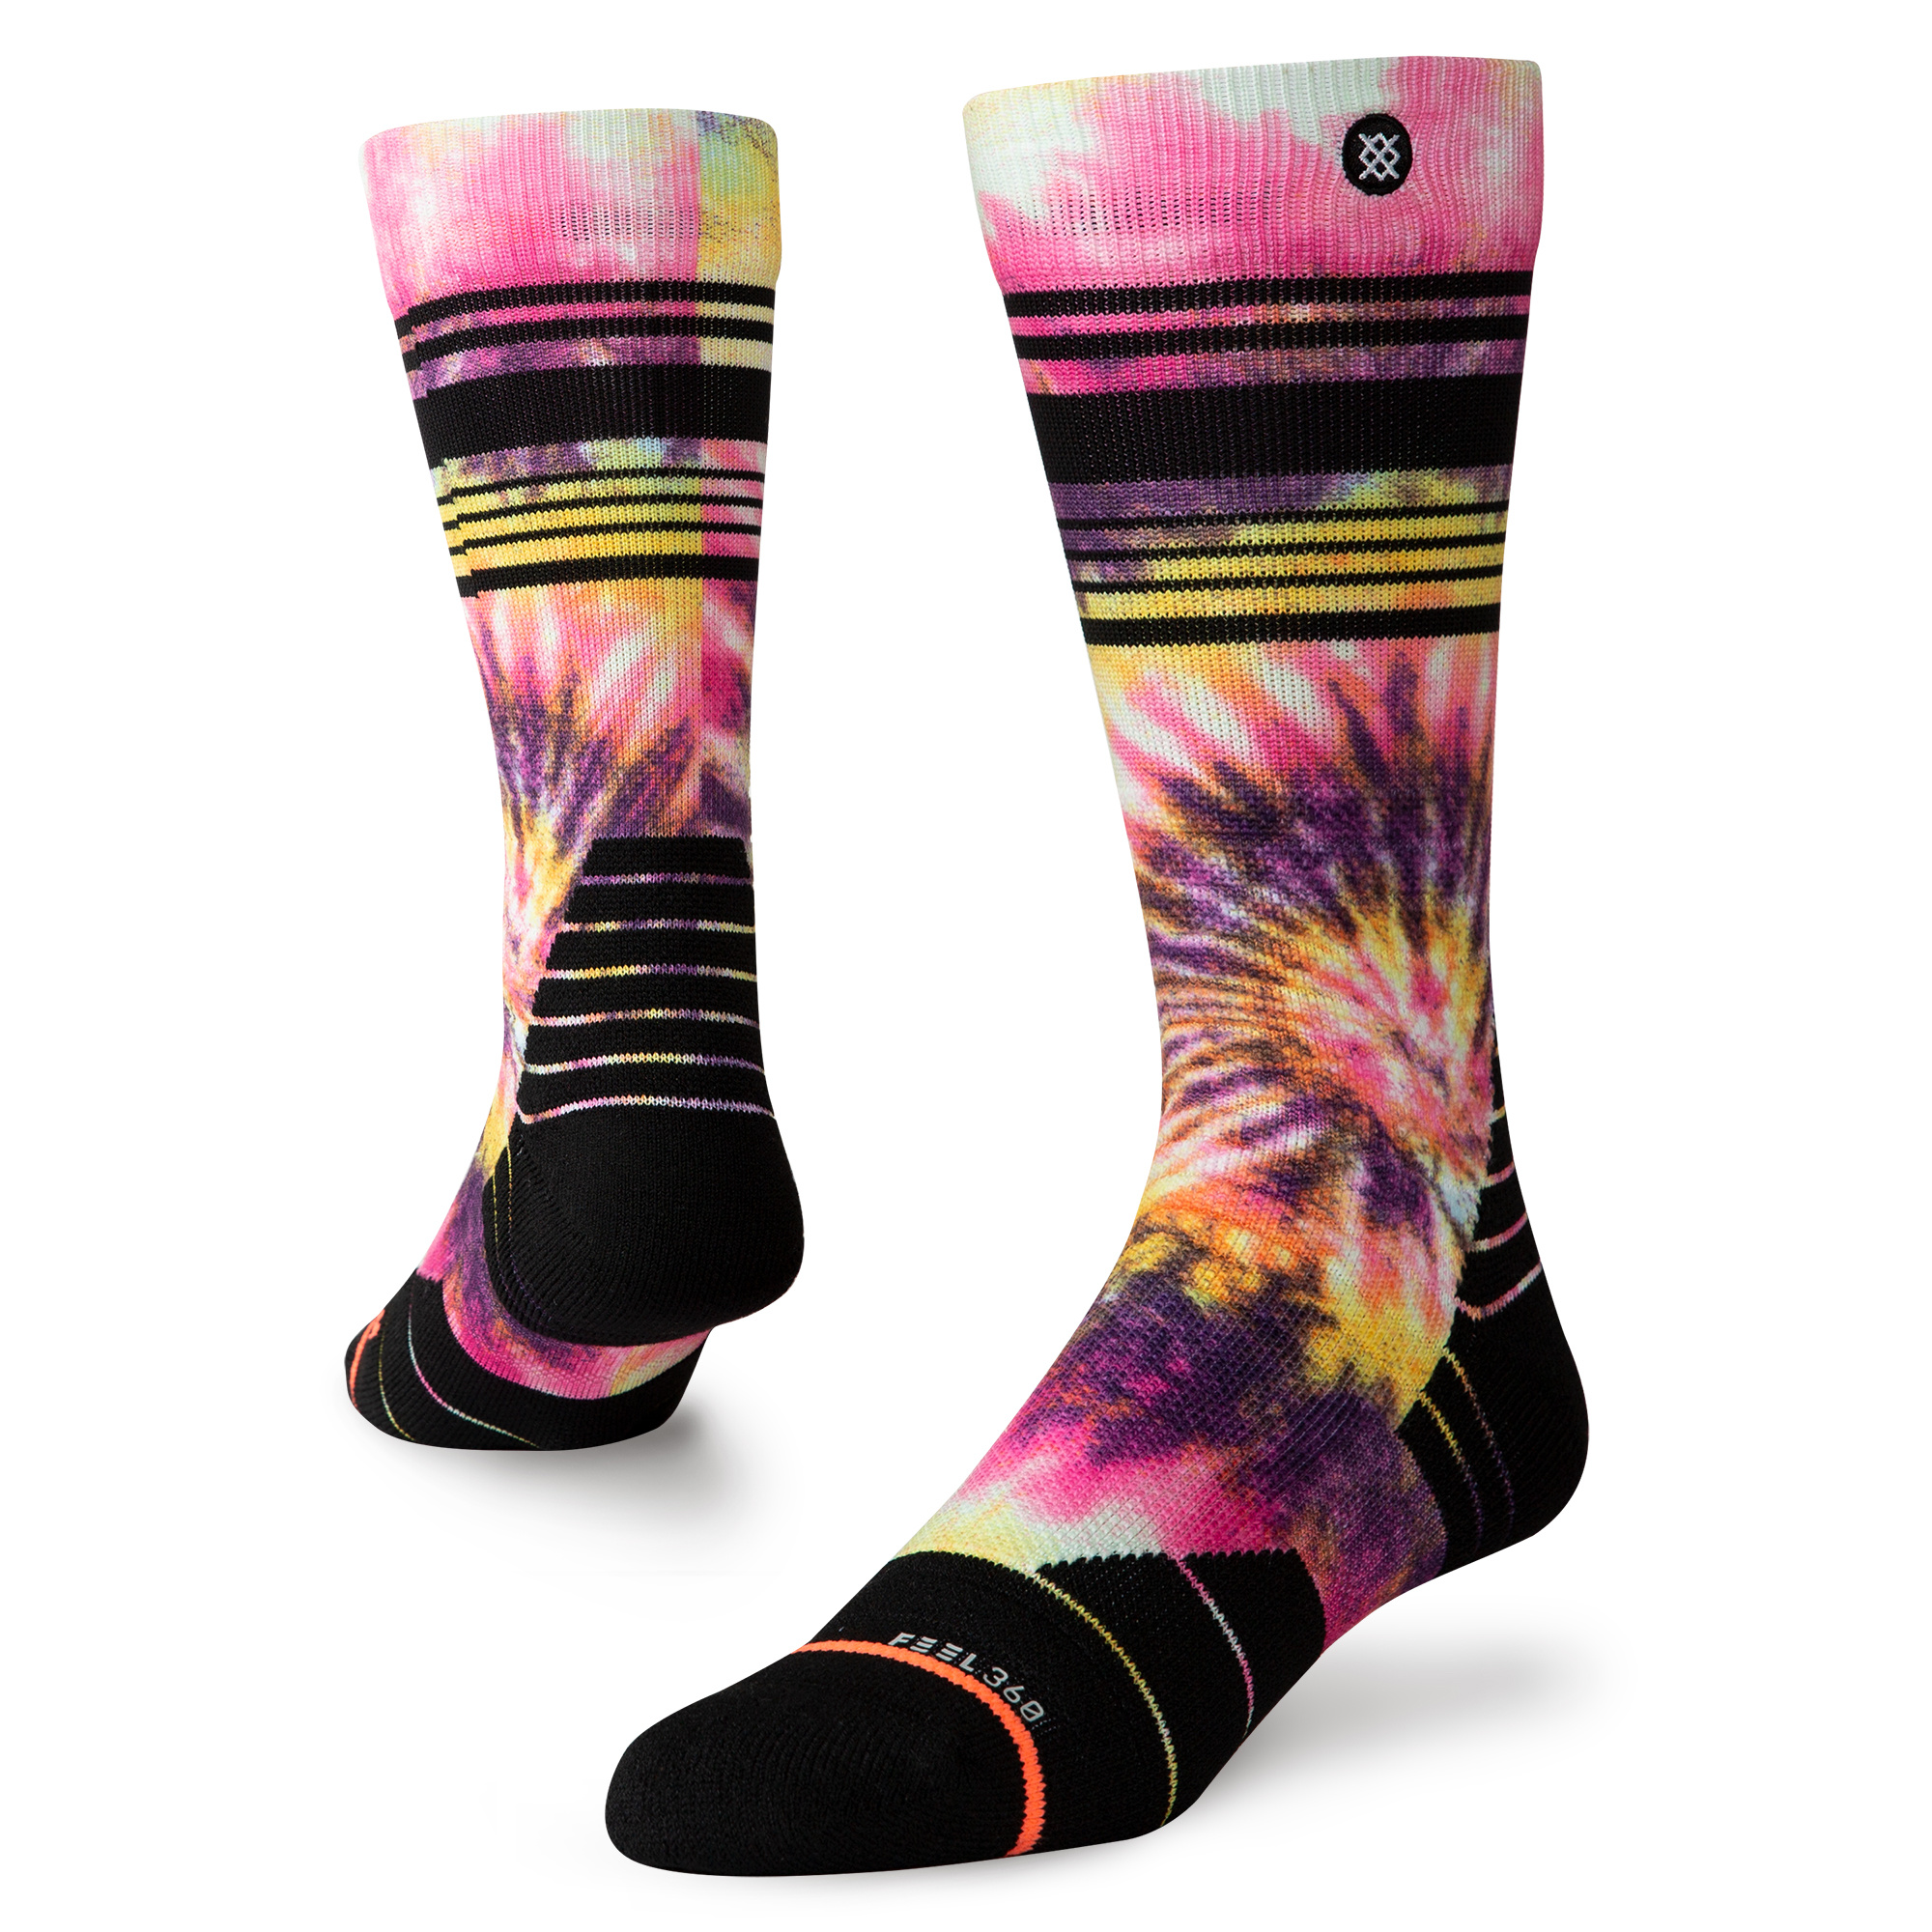 STANCE STANCE W'S MOUNTAIN 2-PACK SNOW SOCK